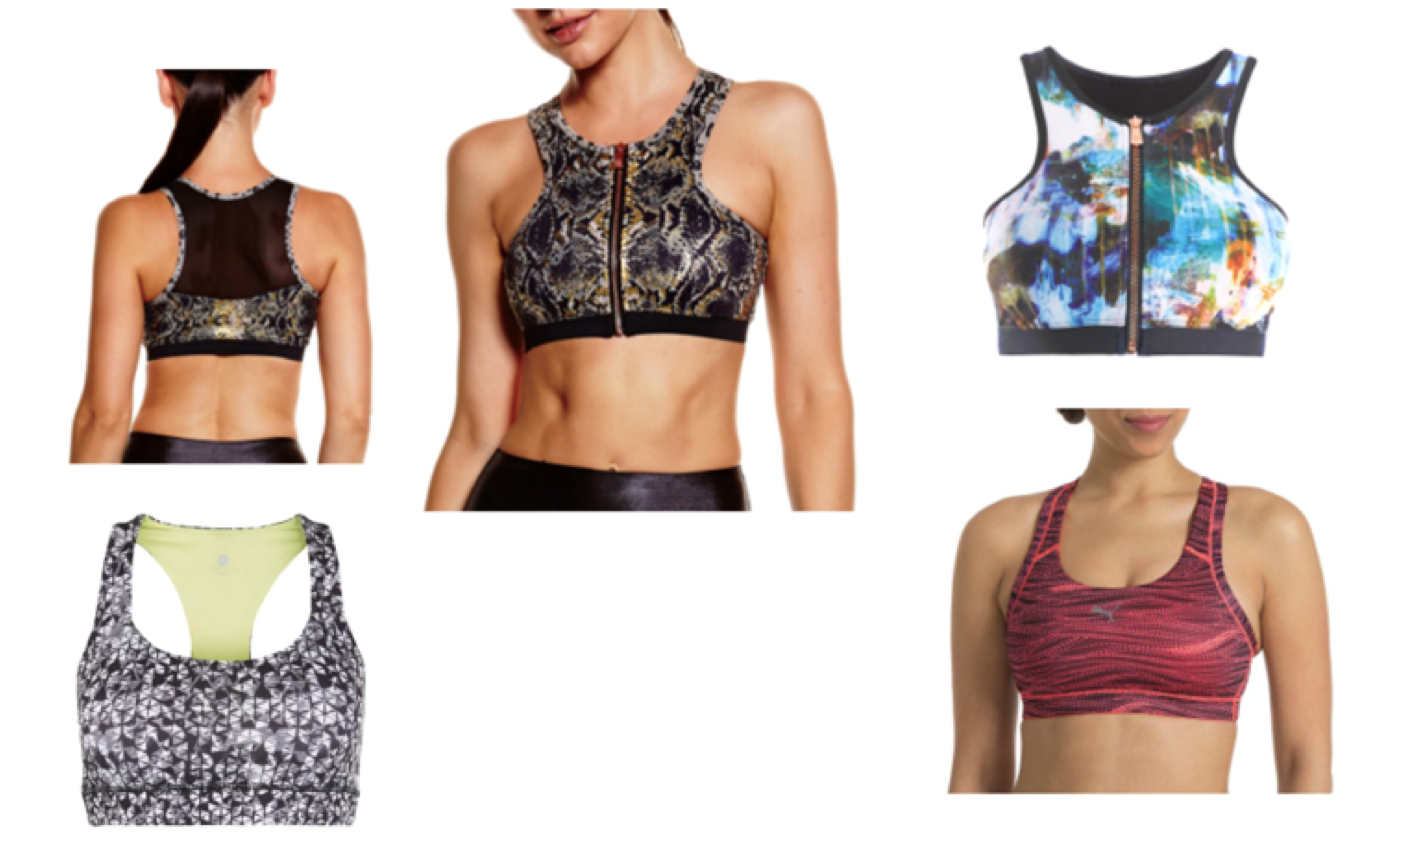 LIVEN UP YOUR FITNESS GEAR